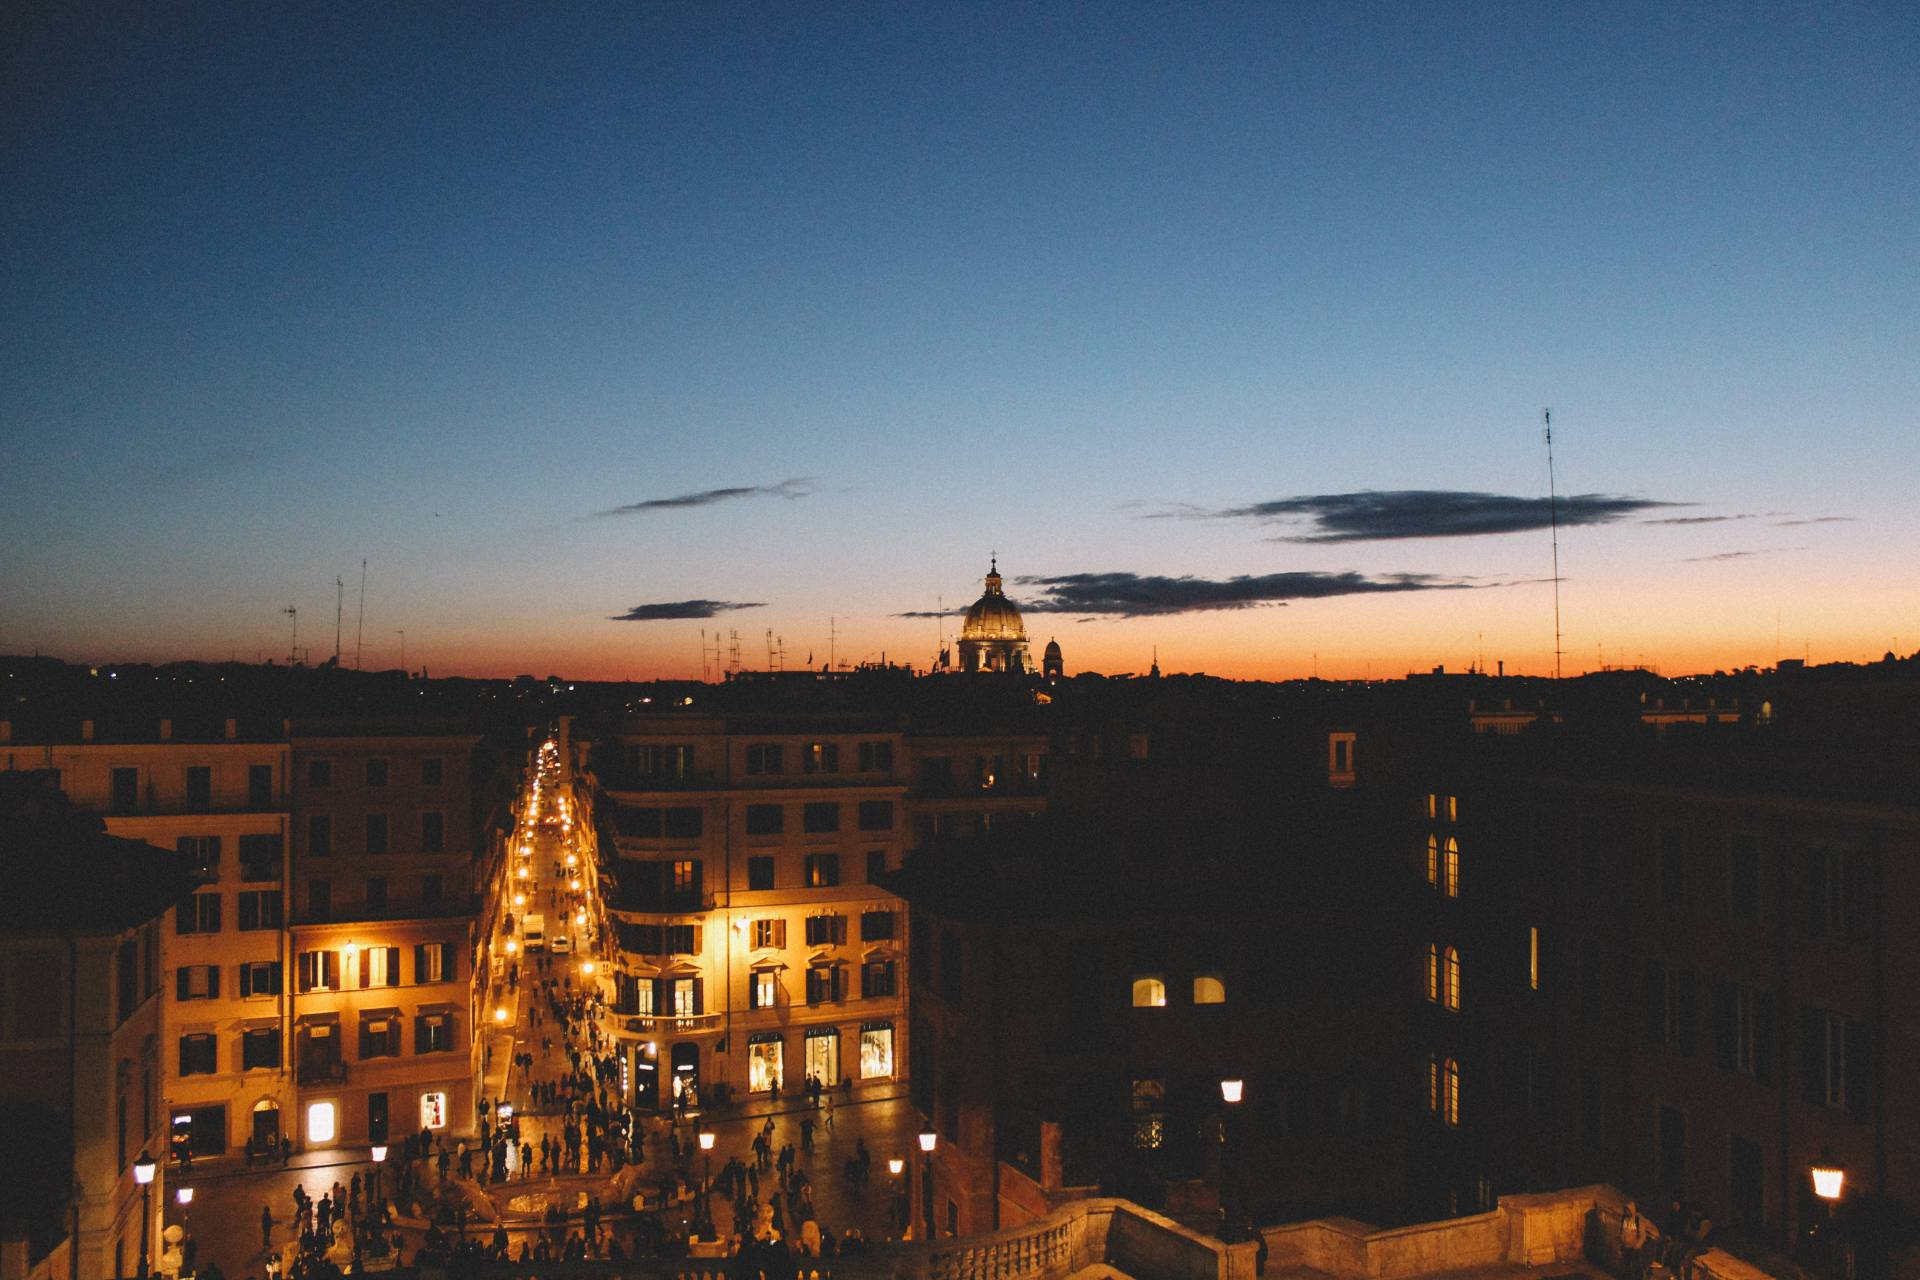 Sunset over the Spanish steps, Rome, Italy